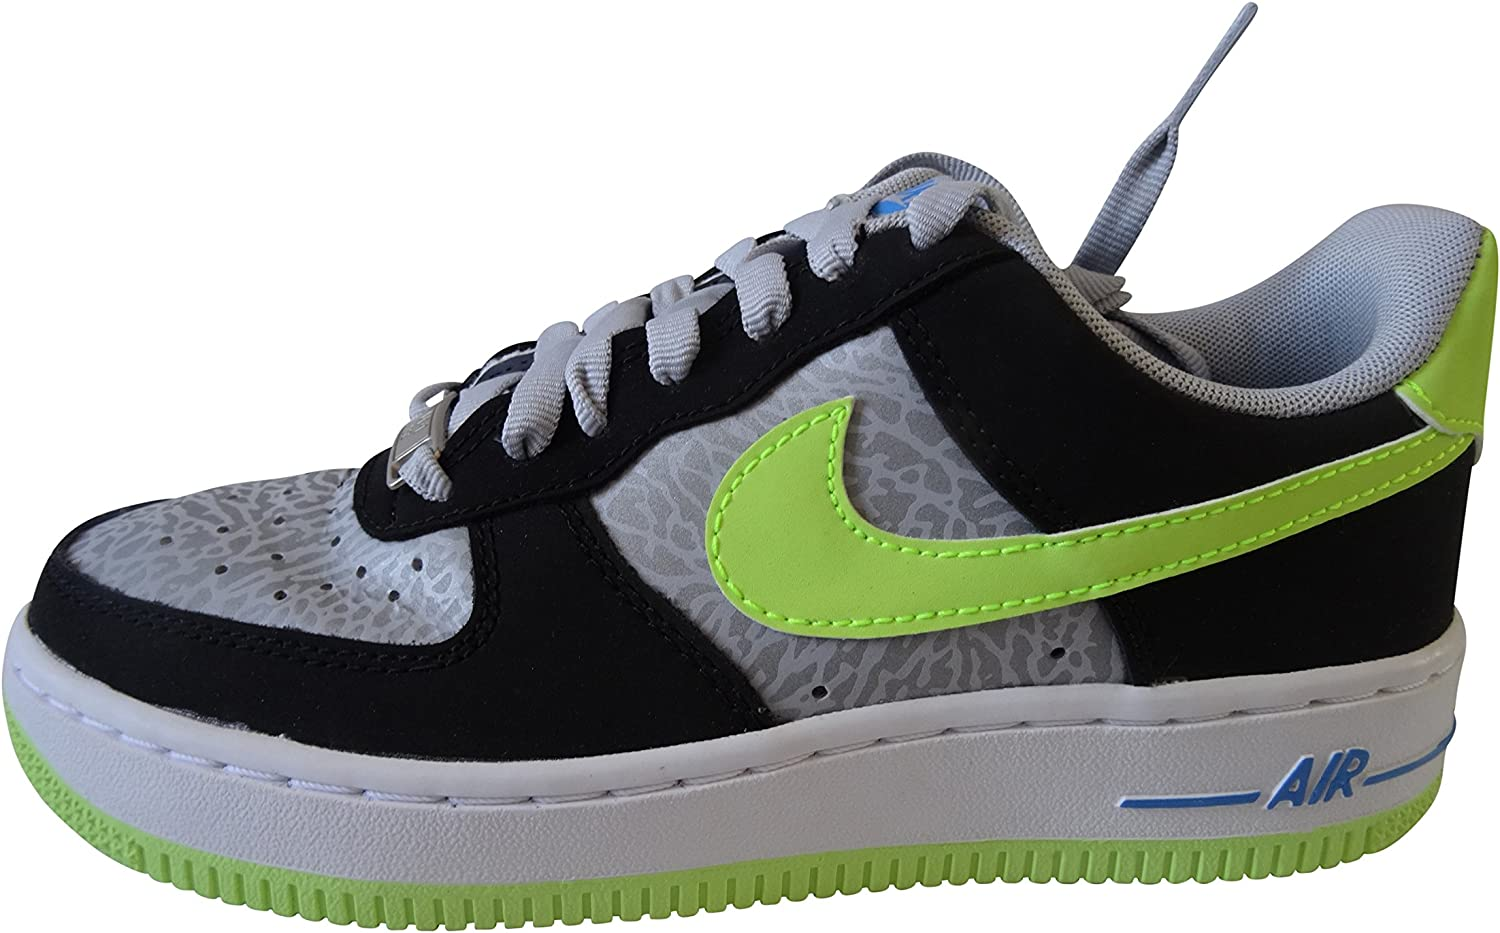 Nike Air Force 1 (Gs), Boys' Sports shoes